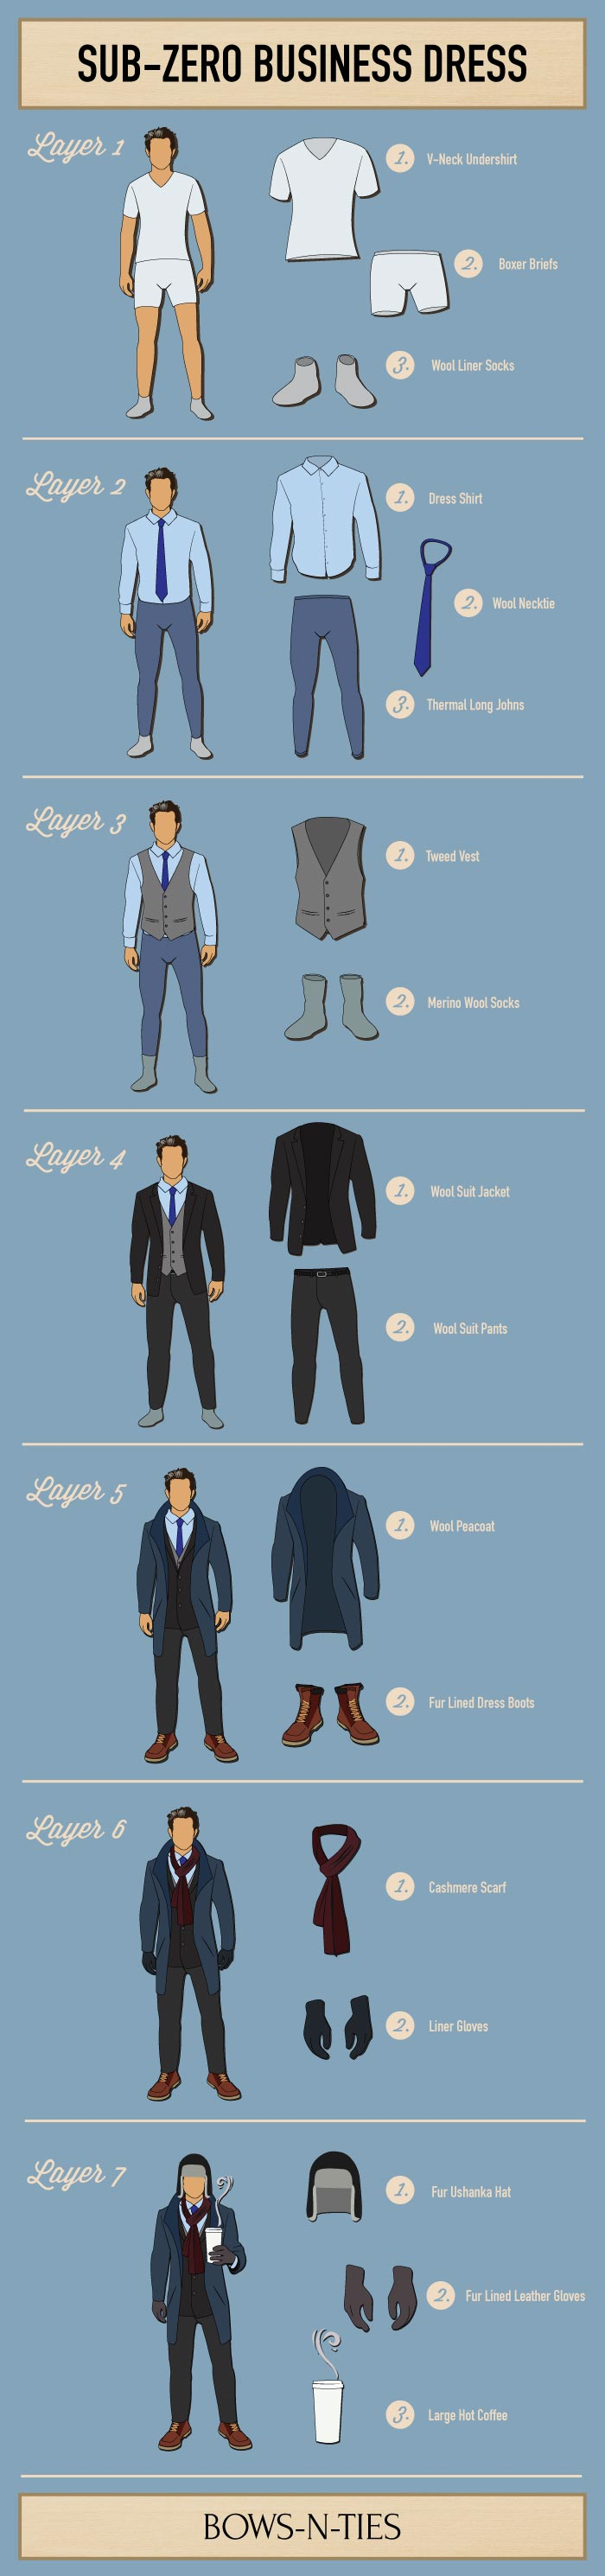 menswear-winter-layering-infographic